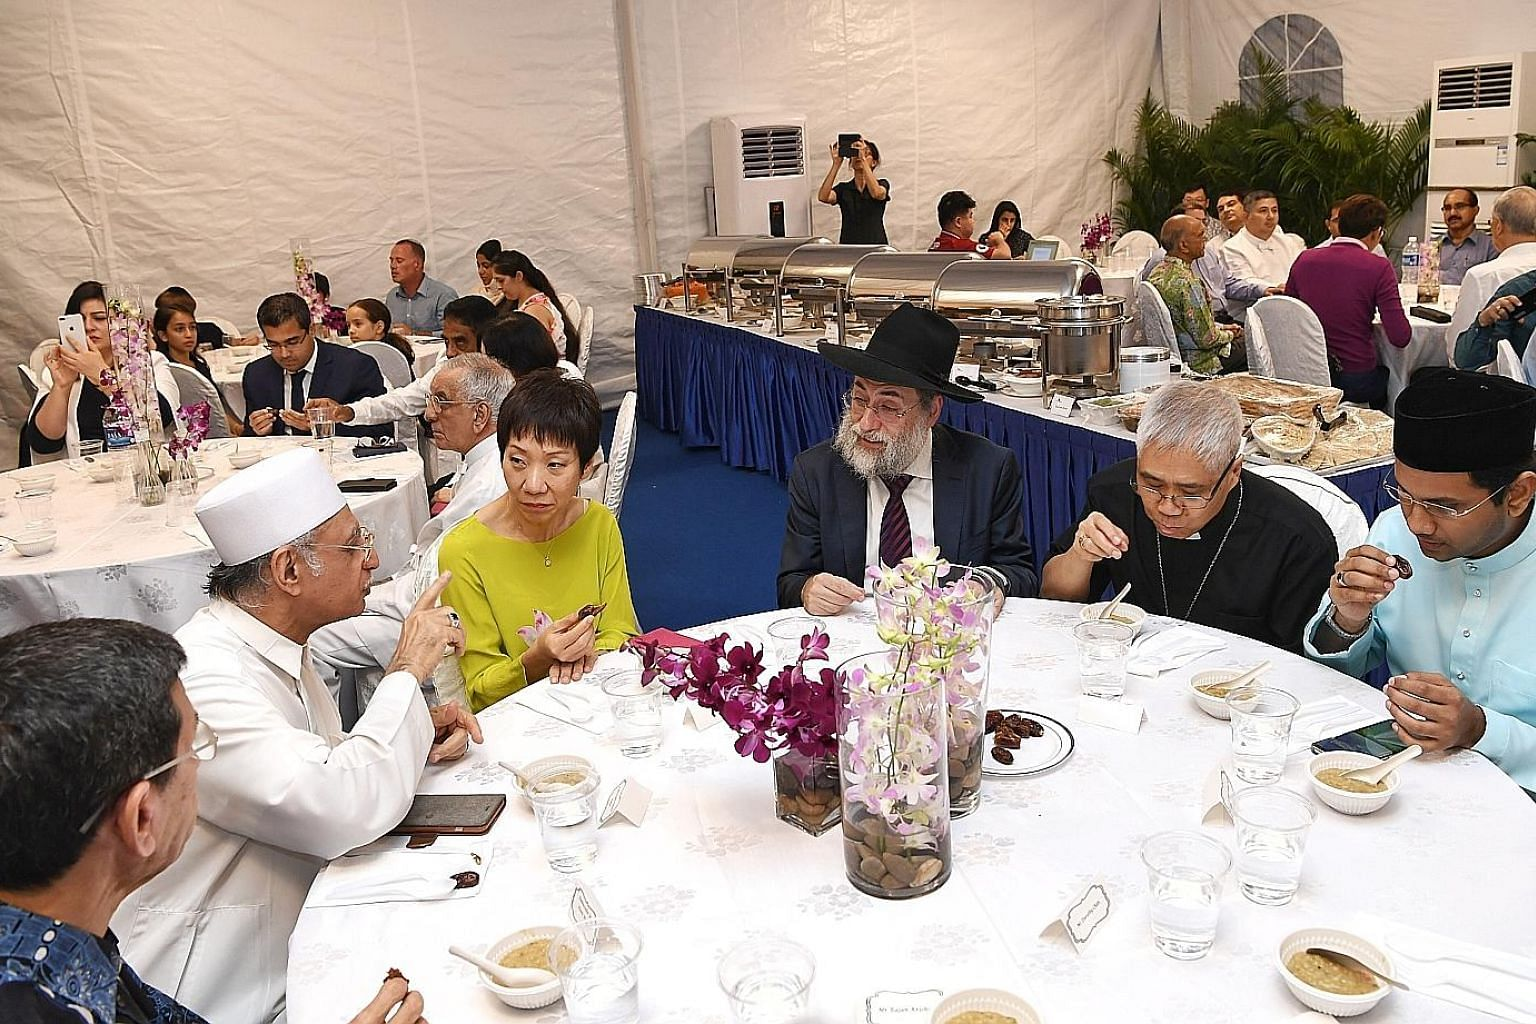 Present at the break-fast session are (from left) Muis president Mohammad Alami Musa, Imam Habib Hassan Al-Attas, Minister for Culture, Community and Youth Grace Fu, Chief Rabbi of Singapore Mordechai Abergel, Archbishop William Goh Seng Chye and Nom